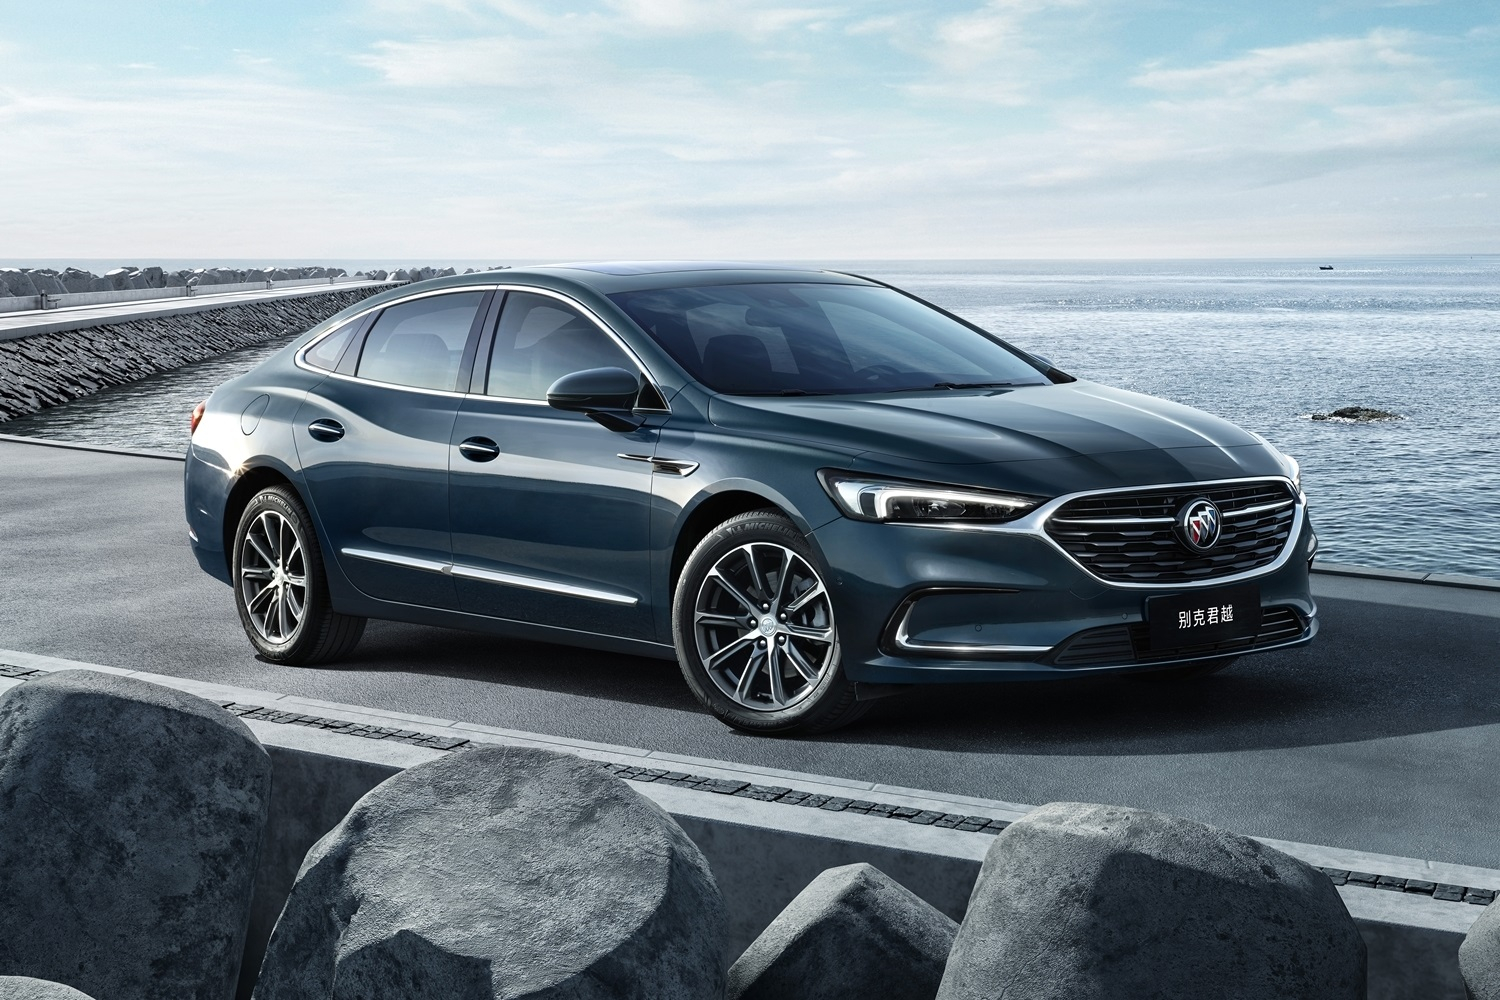 2021 Buick Lacrosse Gets More Refined Than Ever | Gm Authority 2022 Buick Lucerne Rims, Tire Size, Headlights